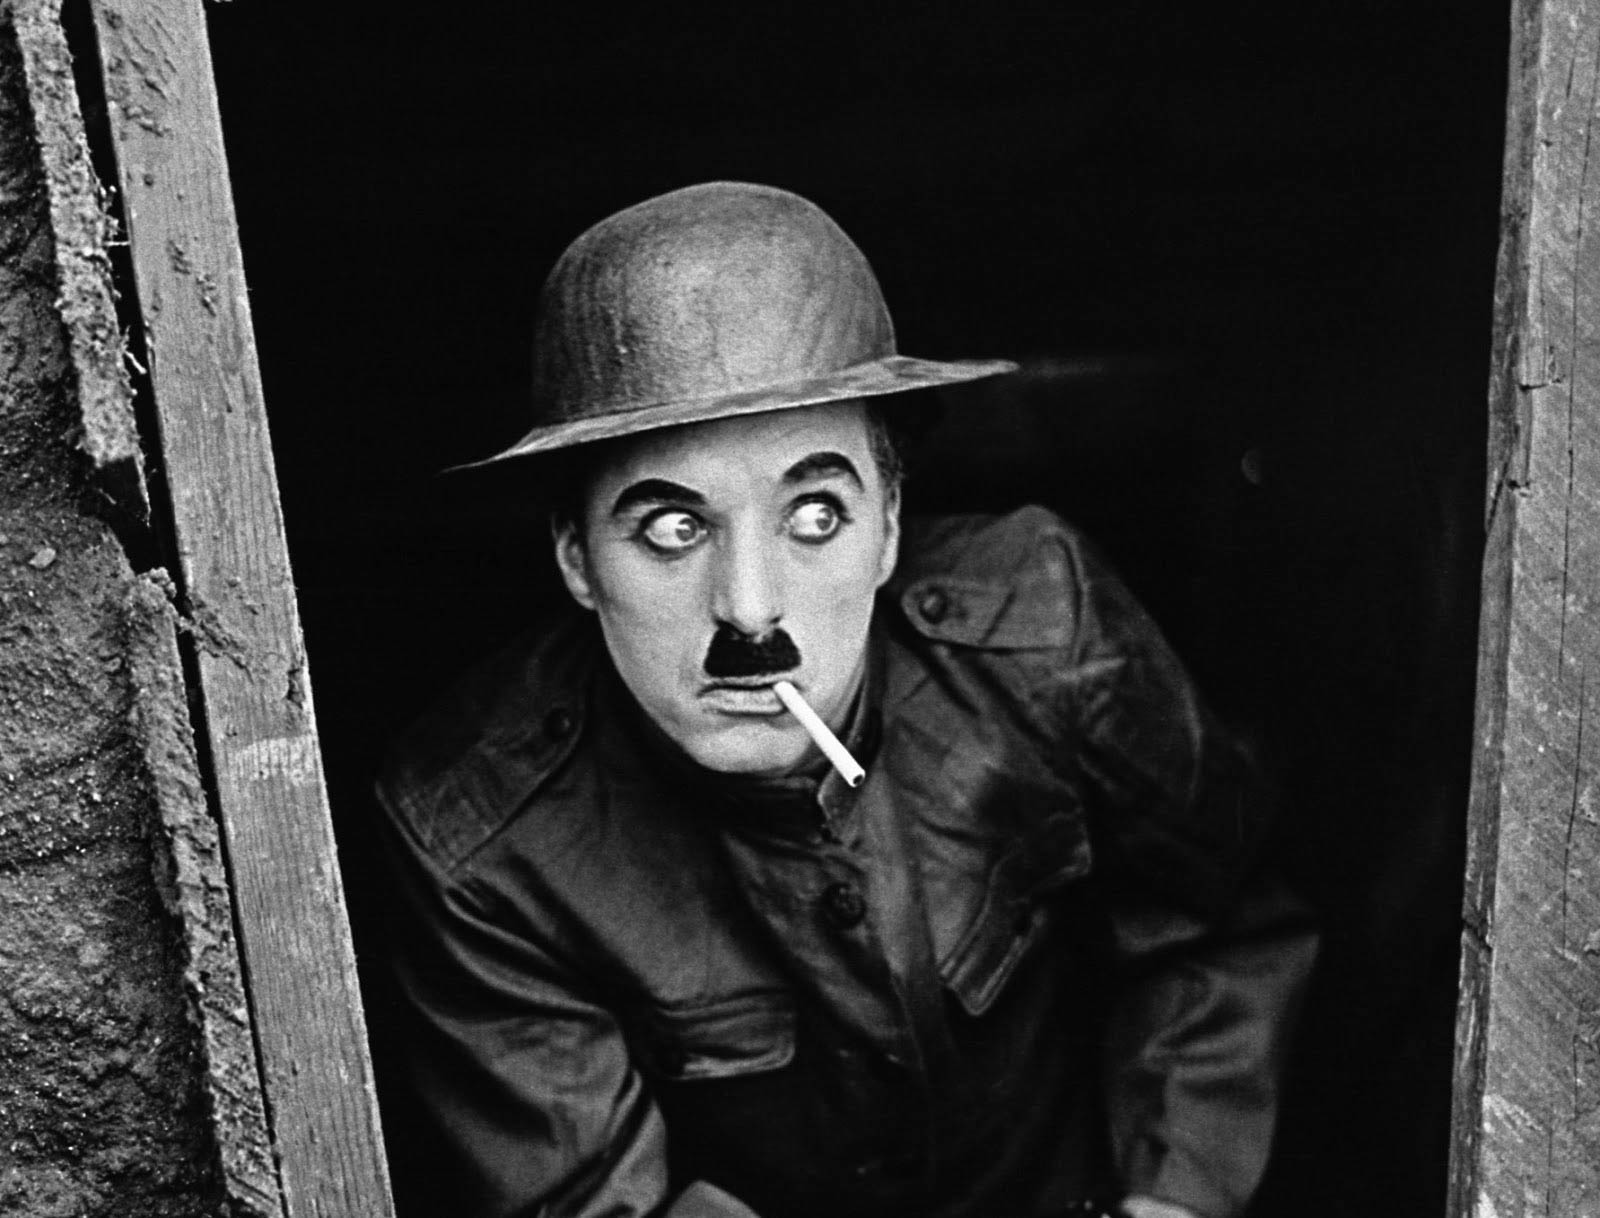 The Political Life and Cinema of Comrade Charlie Chaplin